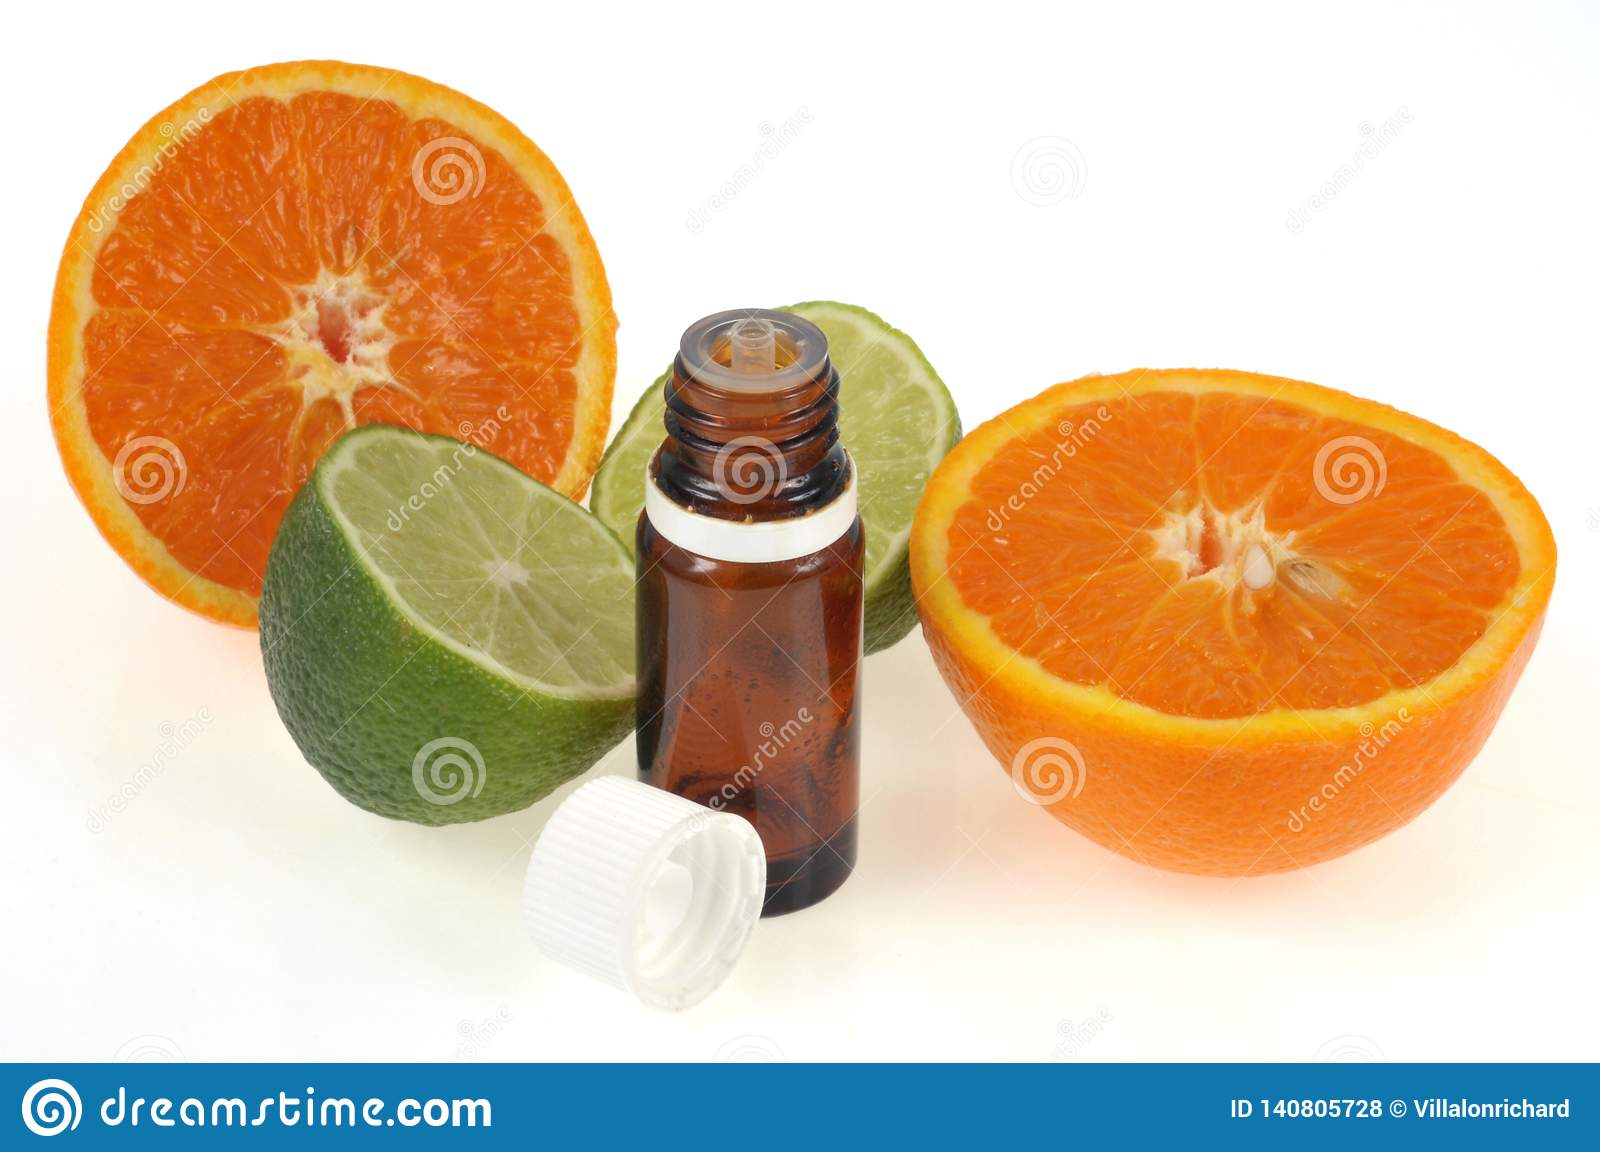 Bottle of citrus essential oil